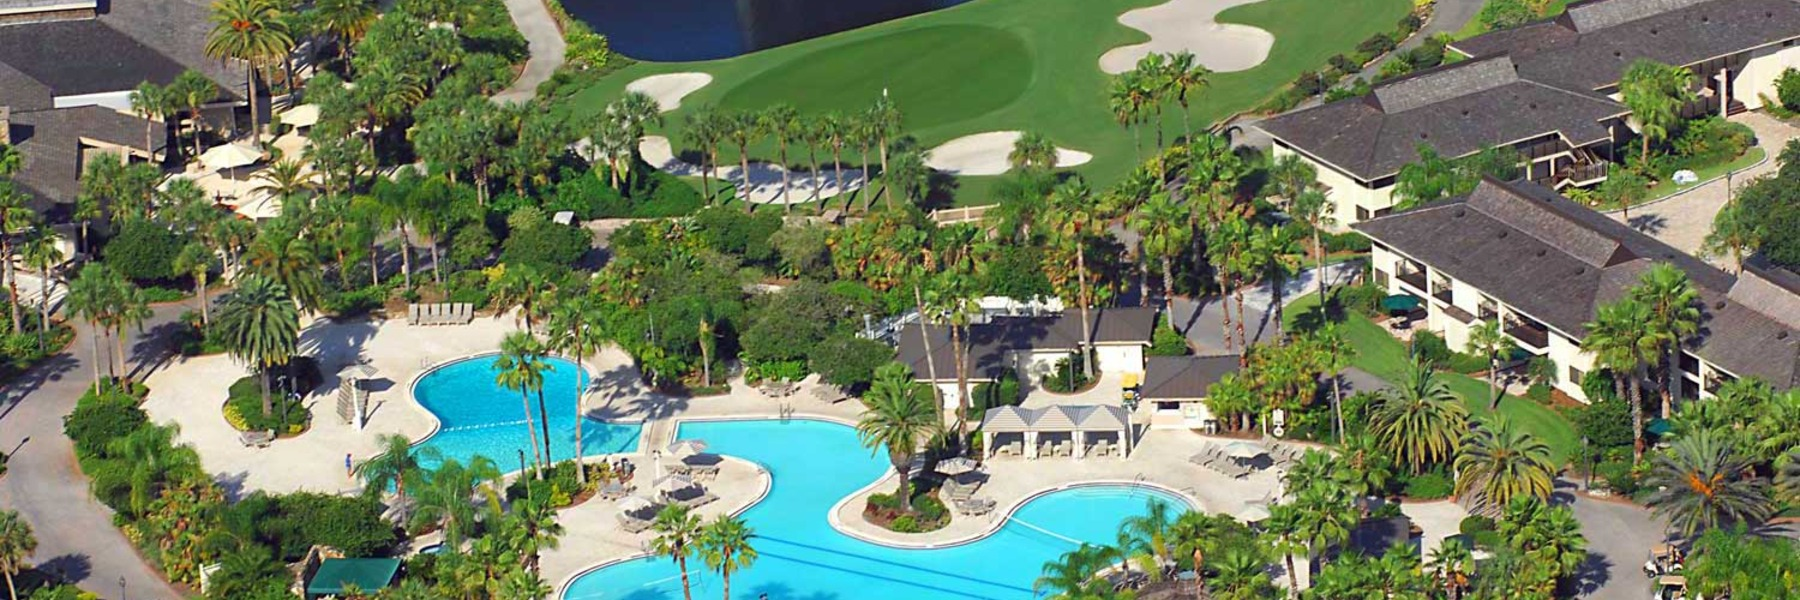 Golf Vacation Package - Saddlebrook Resort Golf Getaway - from $199.00 per person/per day!